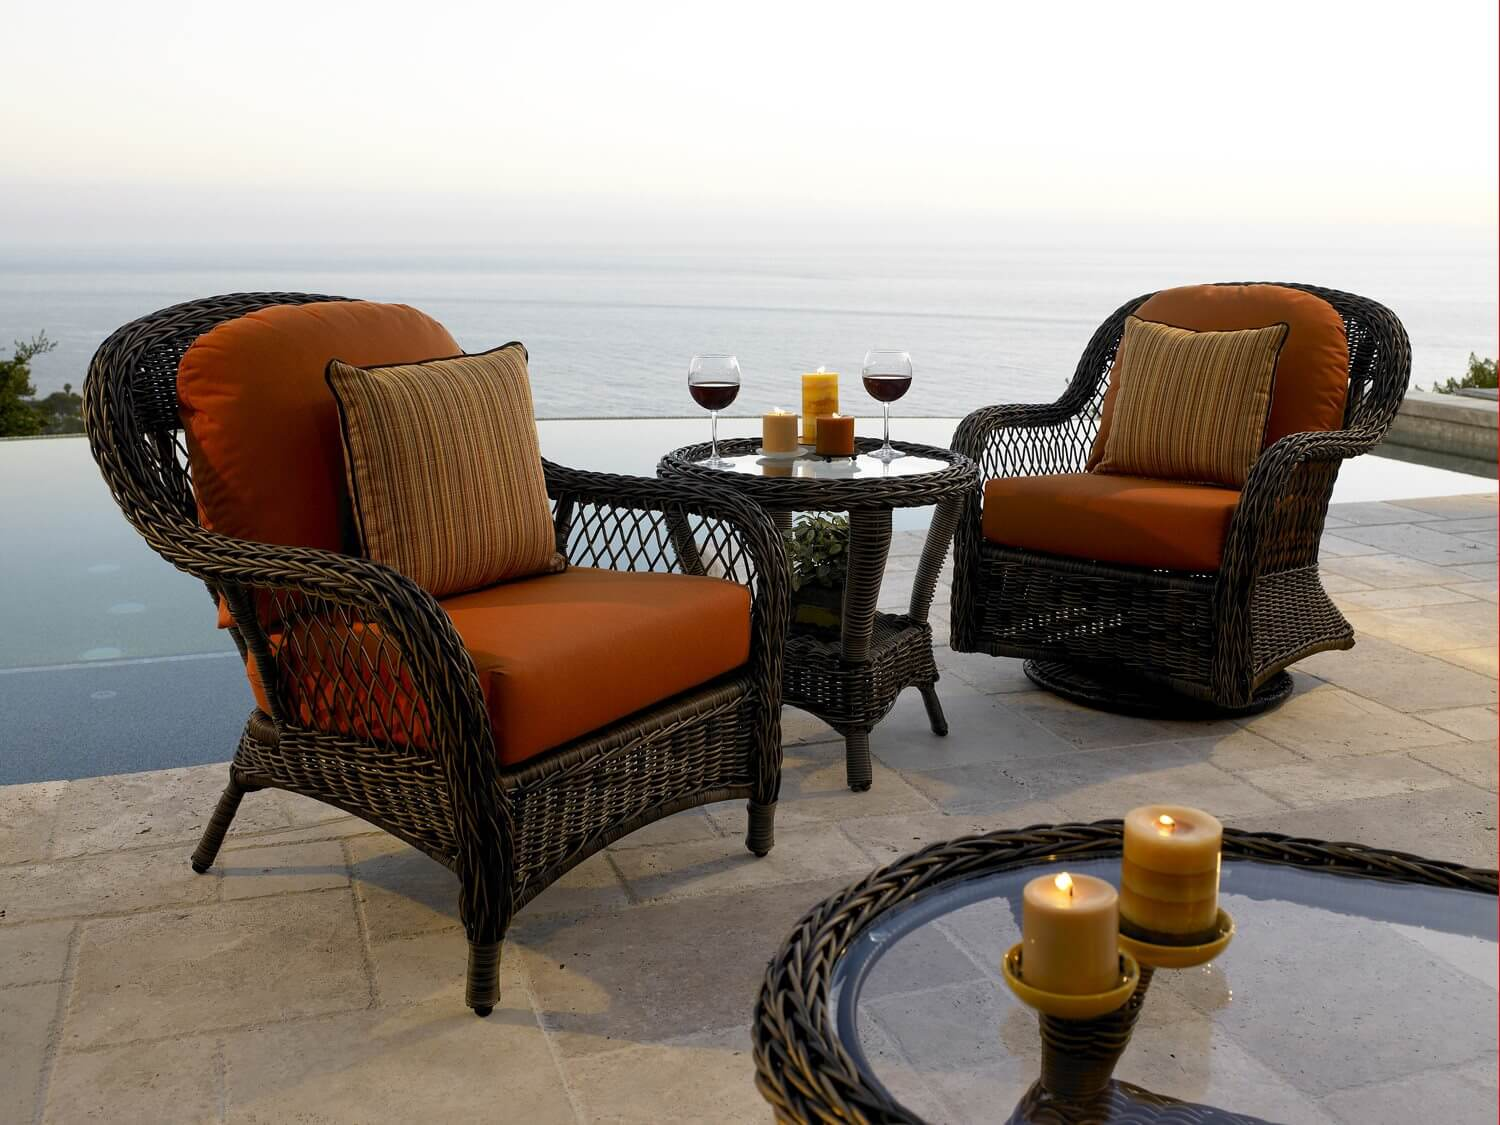 Dark brown wicker patio chairs with dark orange cushions